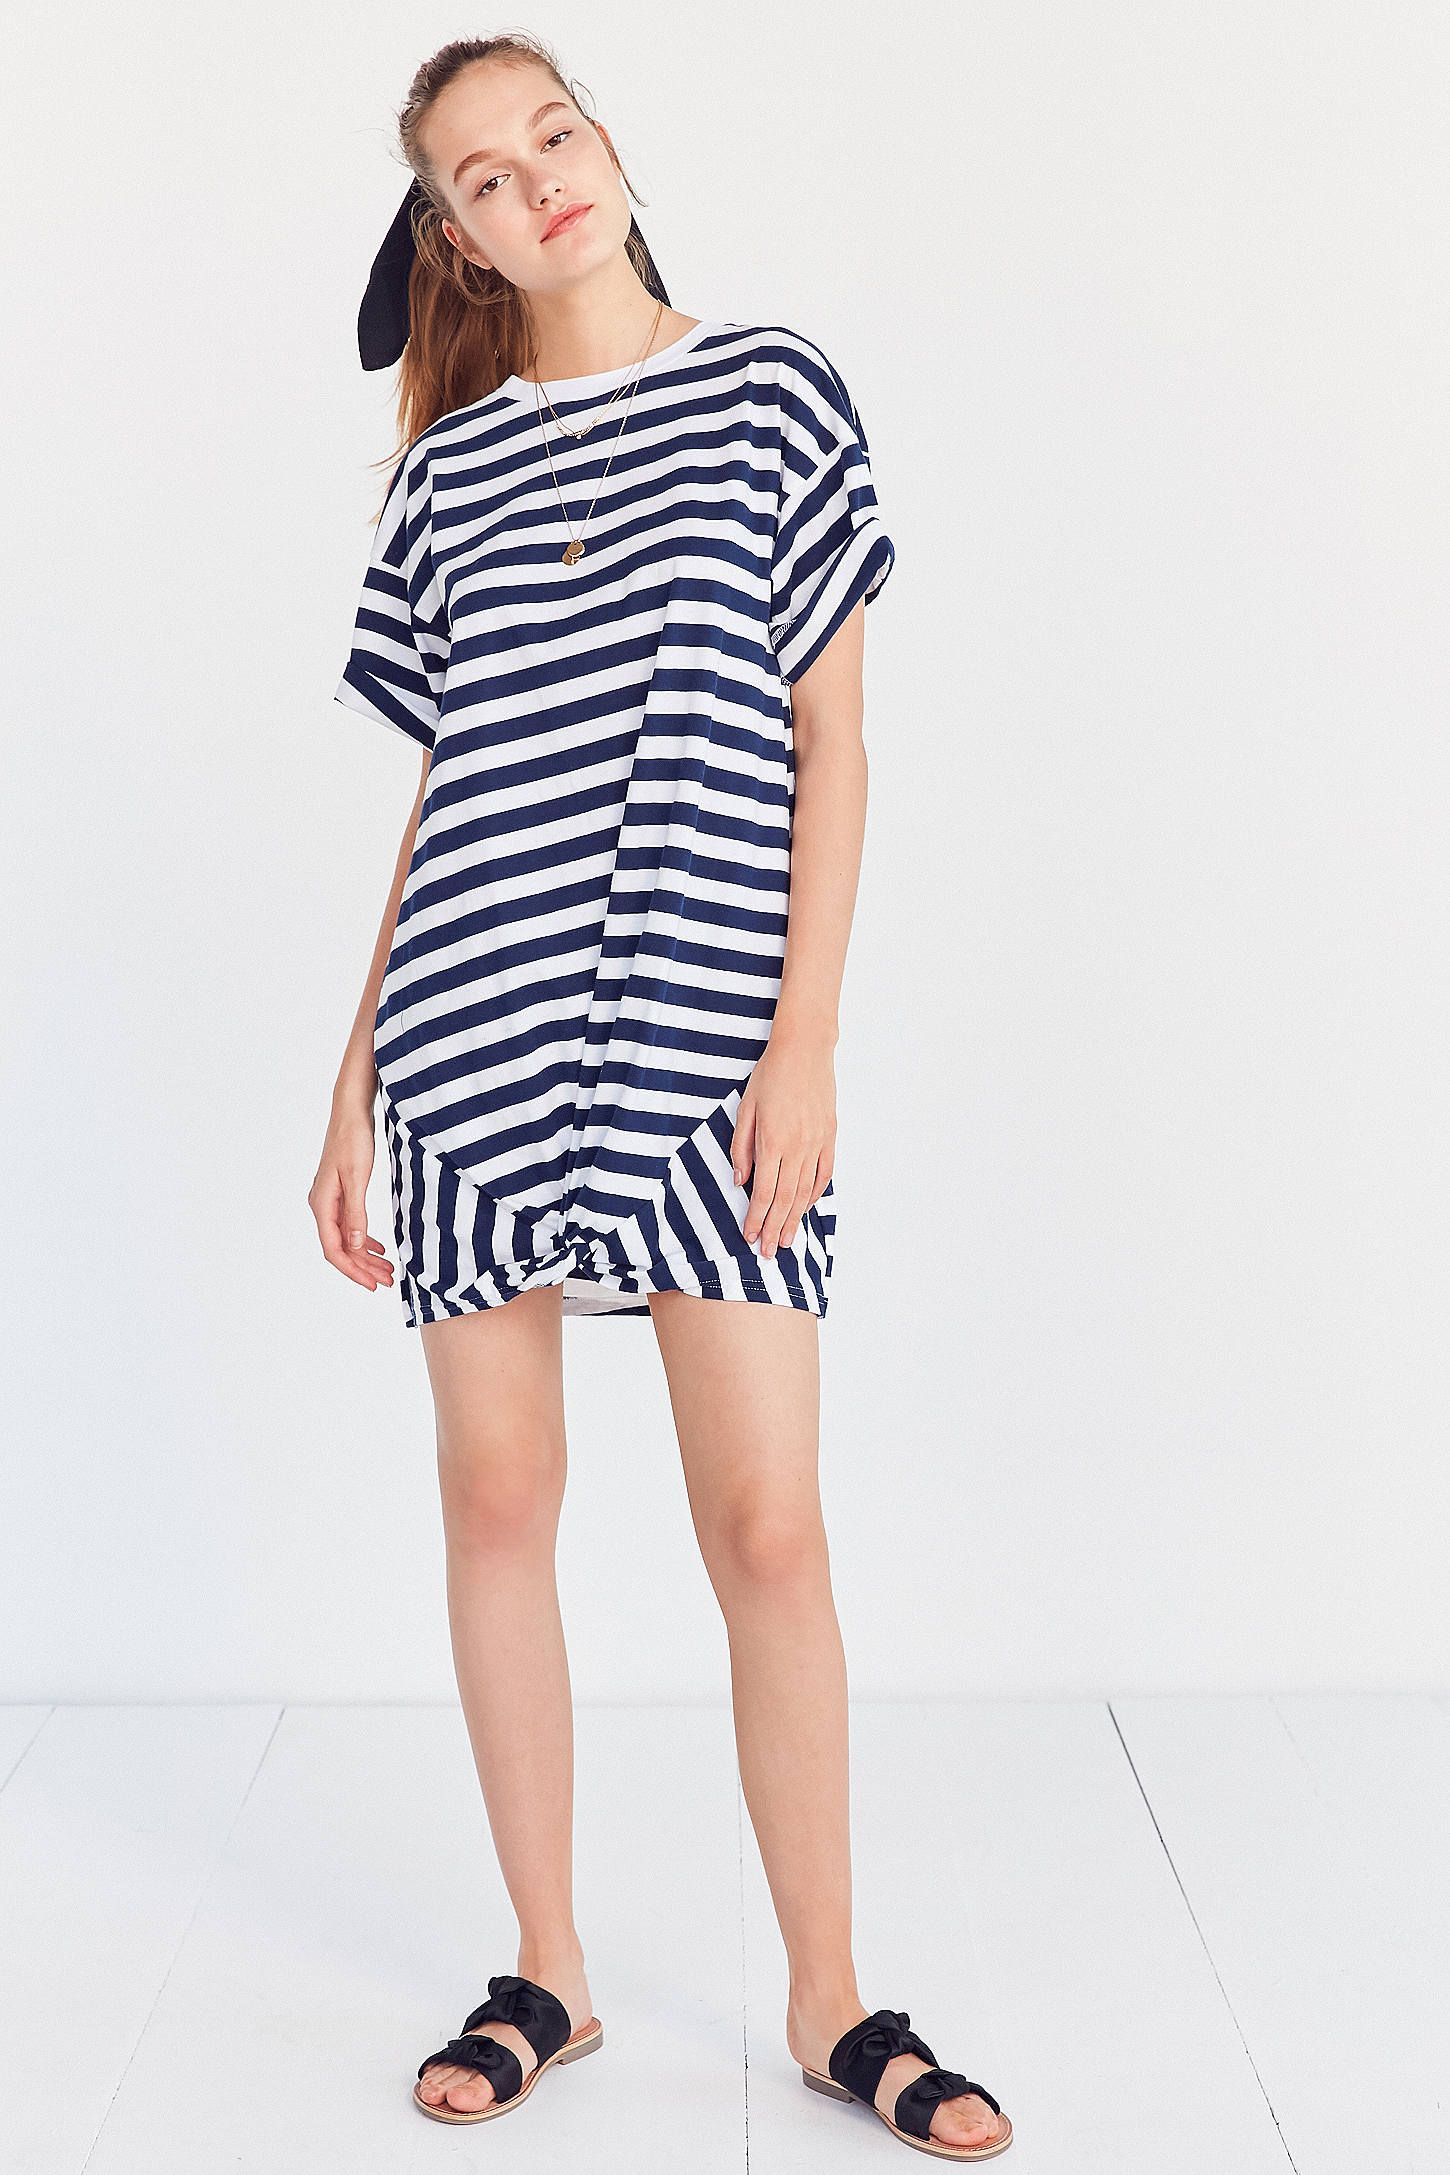 a5ee51283b2 Slide View  3  The Fifth Label Off Duty Striped T-Shirt Dress